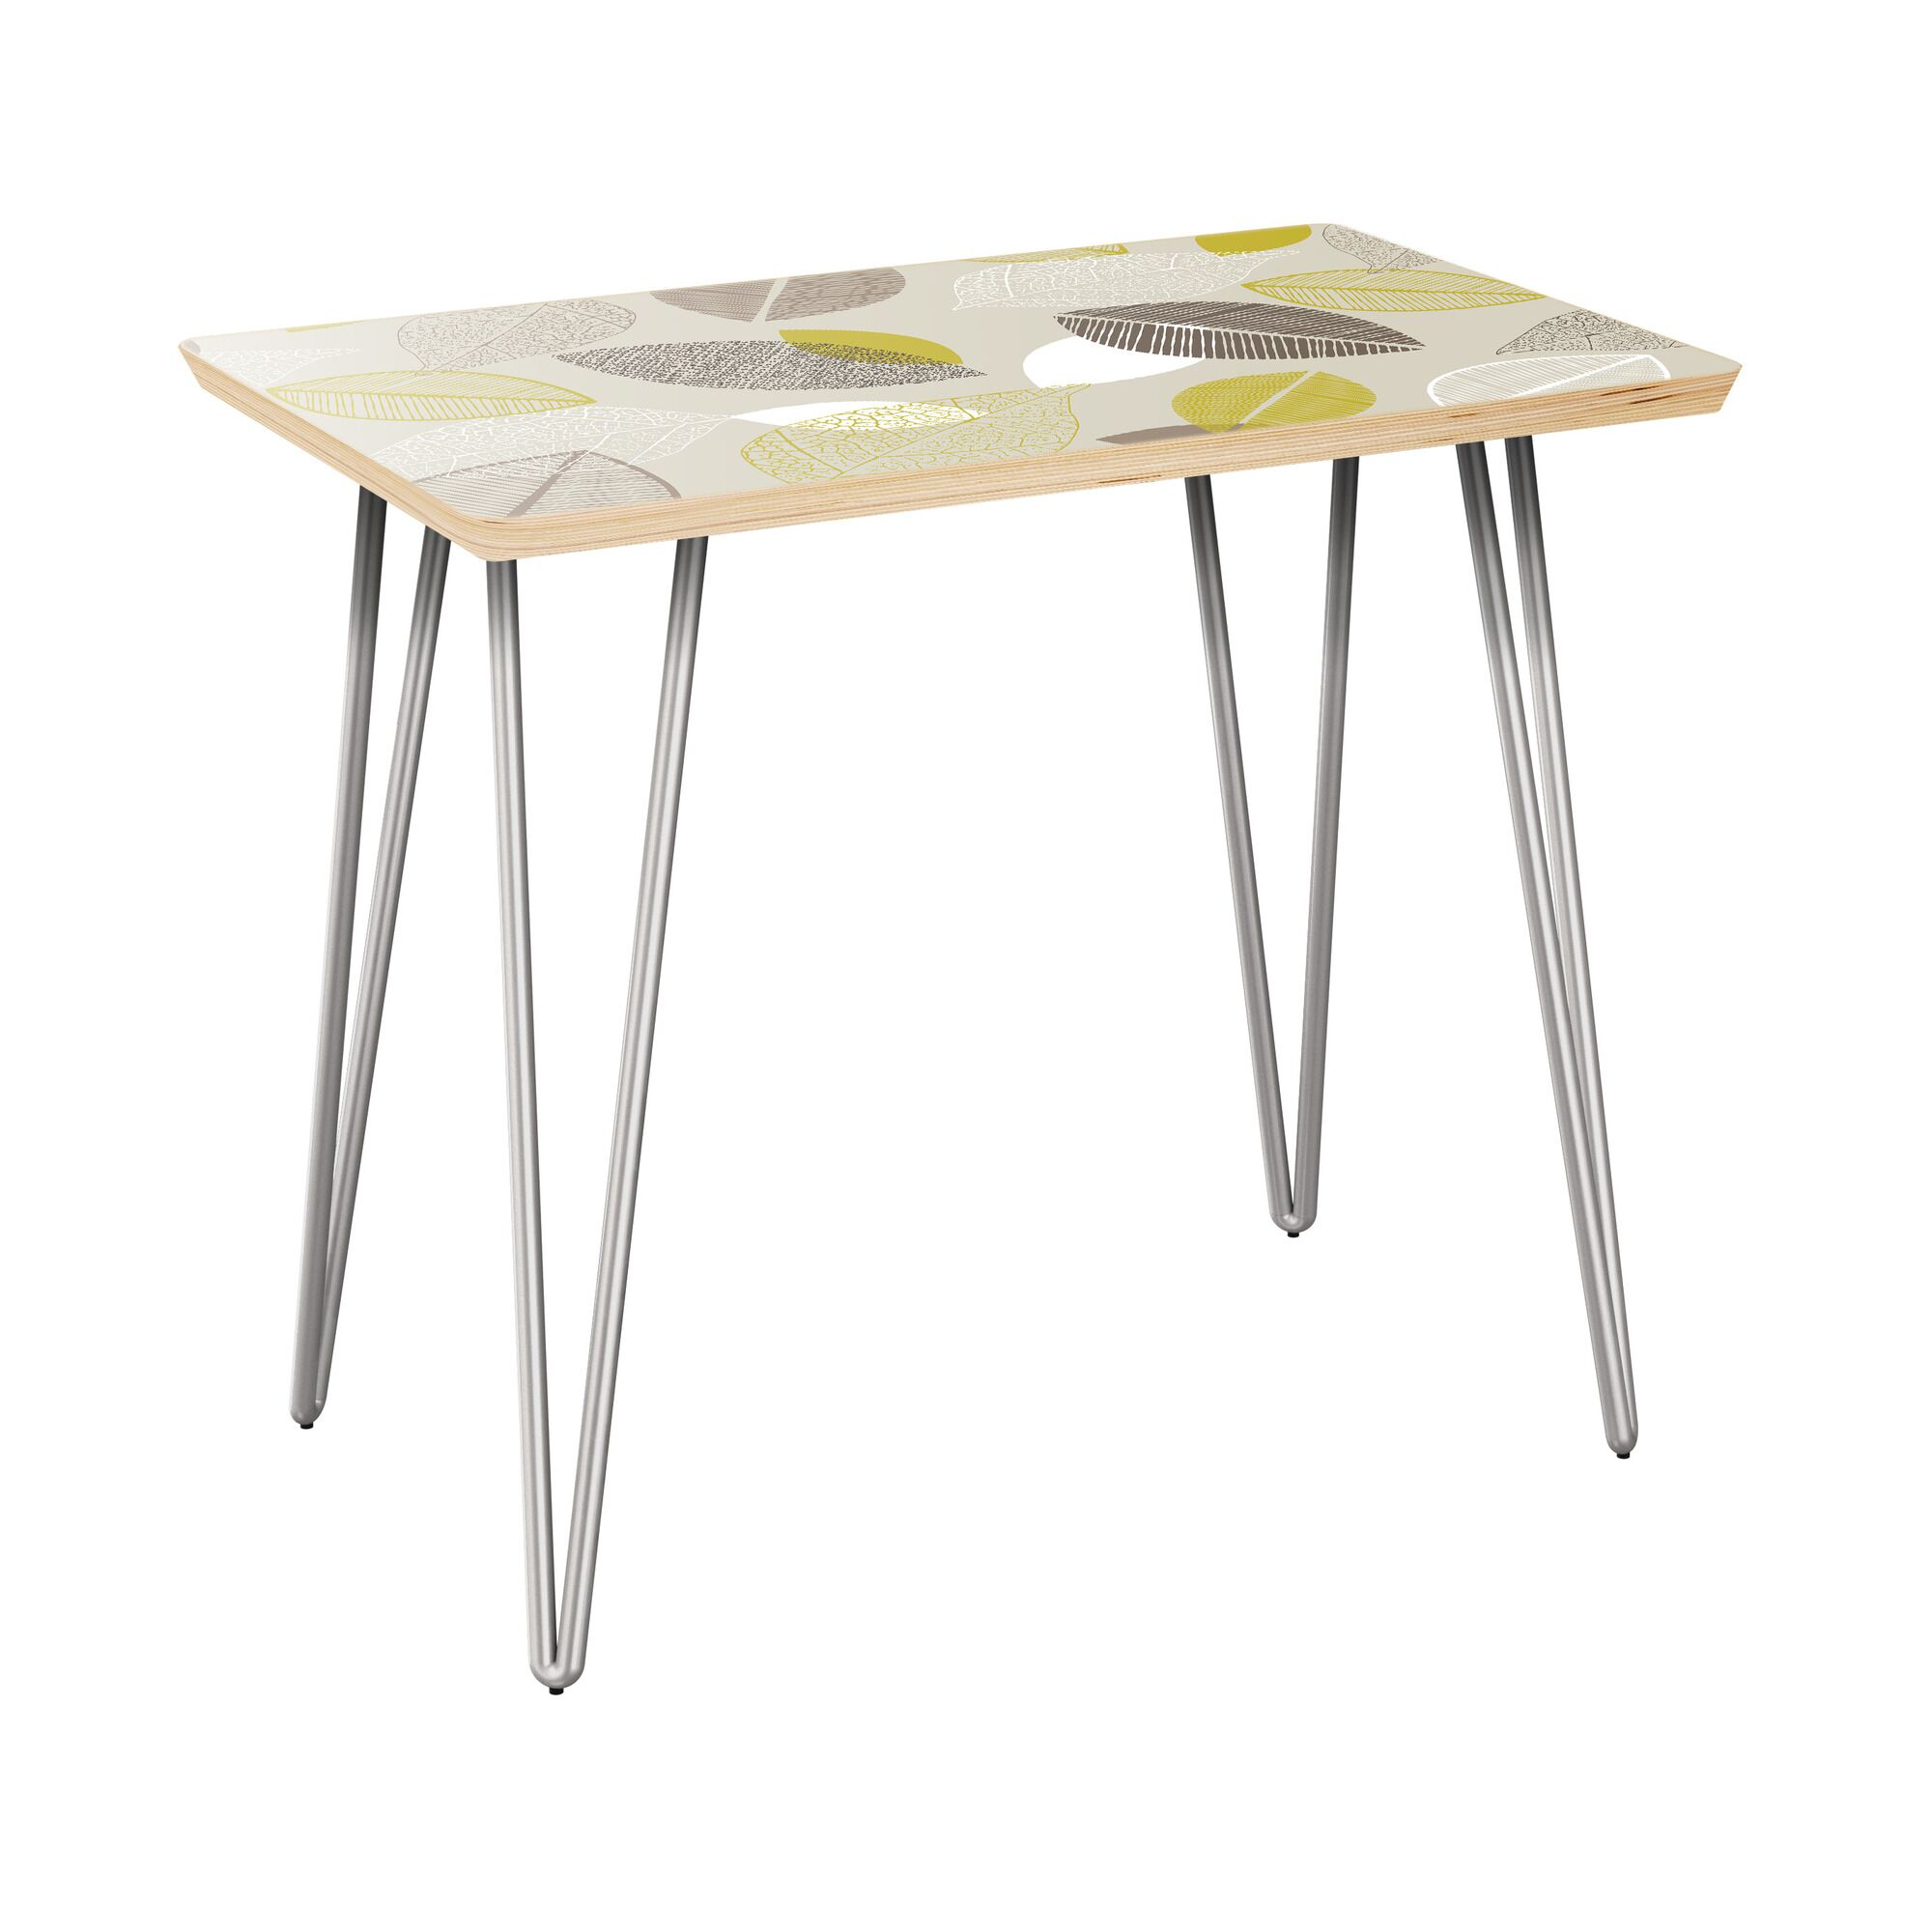 Jazmyne End Table Table Top Boarder Color: Walnut, Table Base Color: Chrome, Table Top Color: Pink